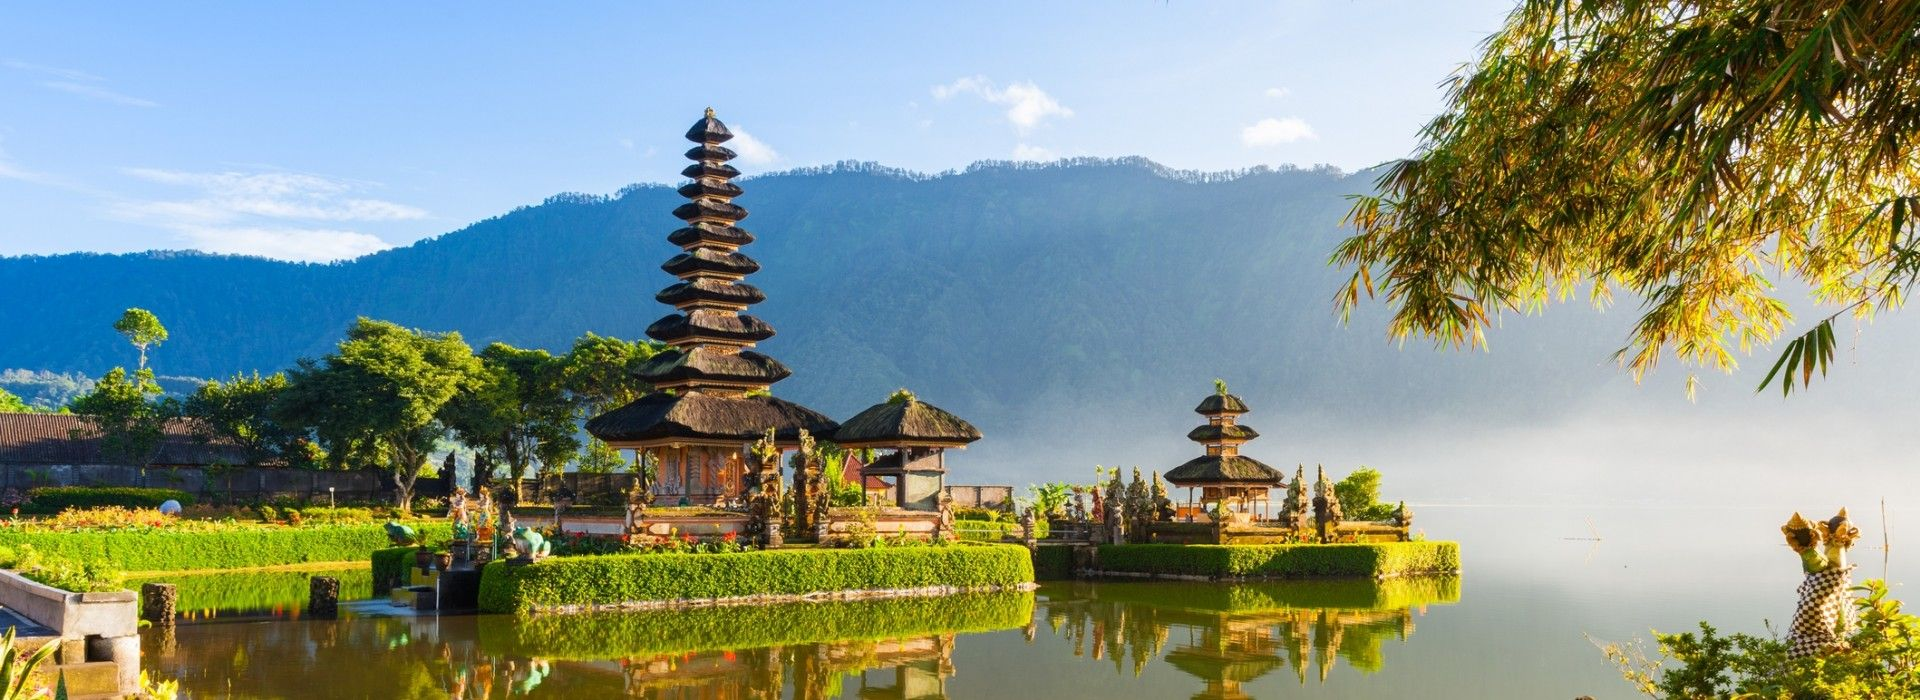 National parks Tours in Bali